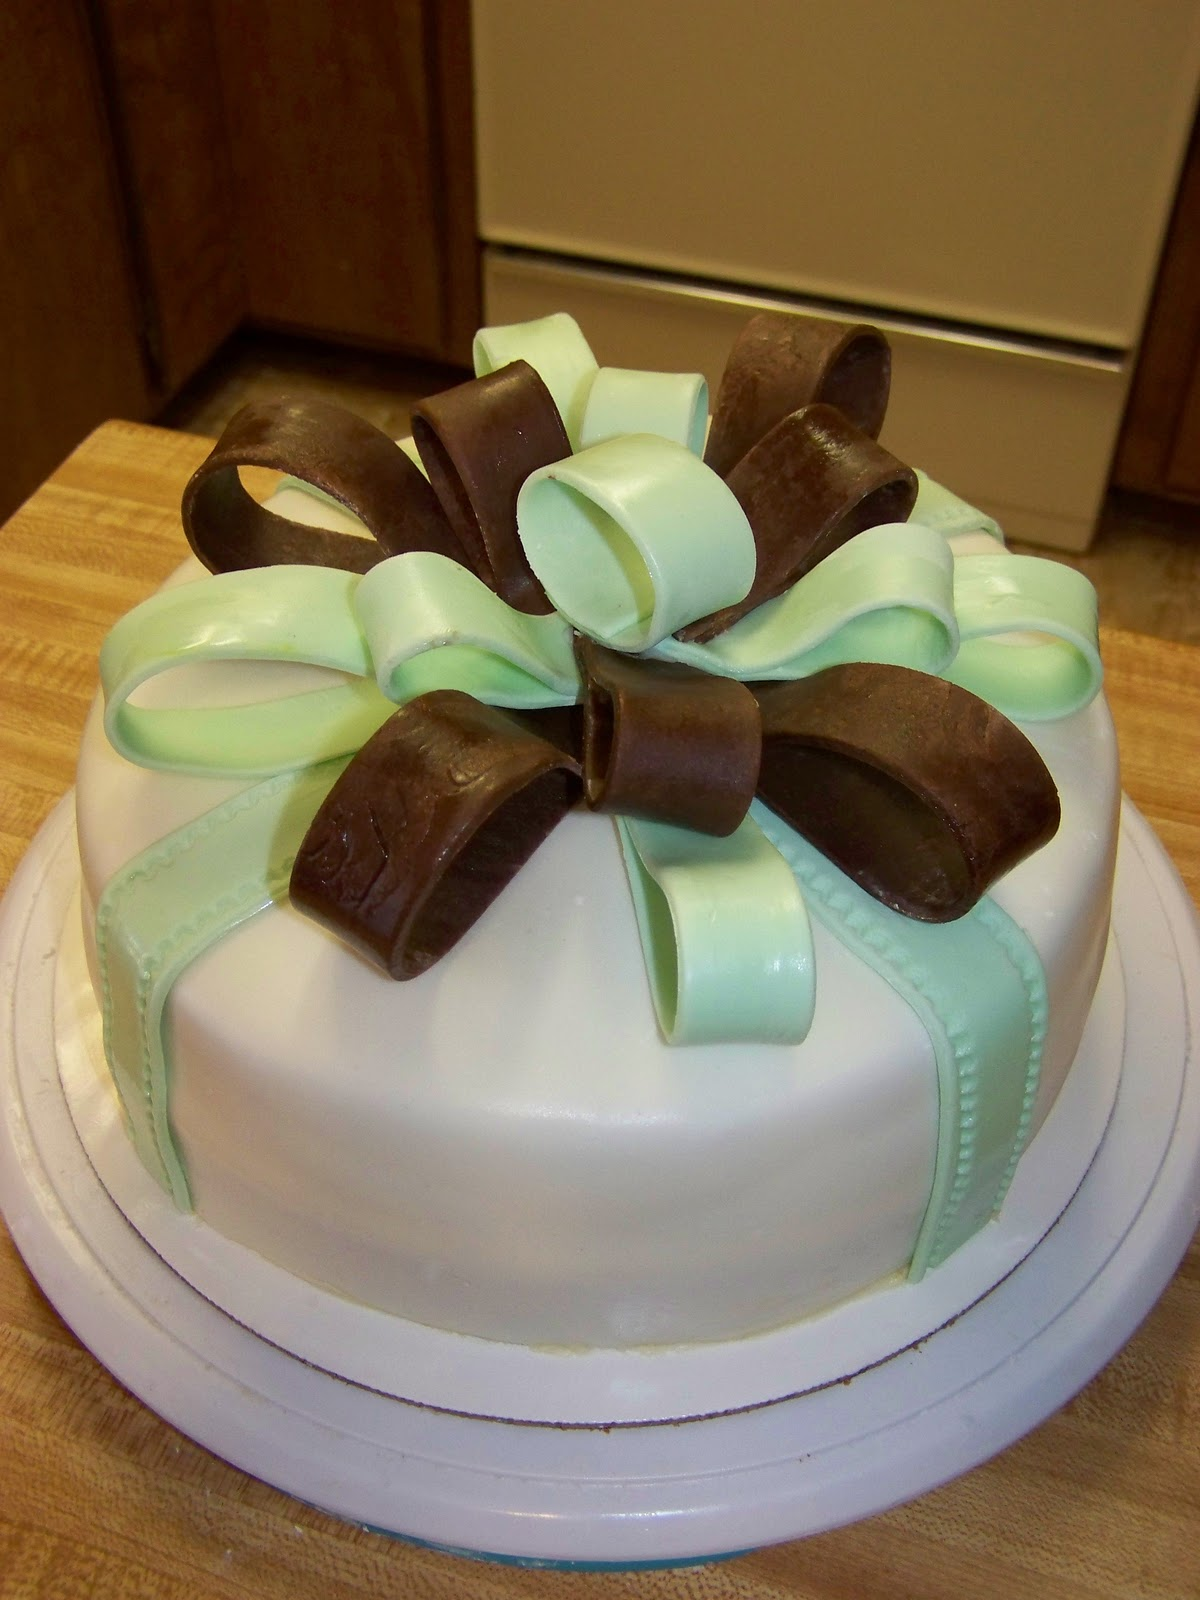 Cake A Licious Mint Green Amp Chocolate Birthday Present Cake